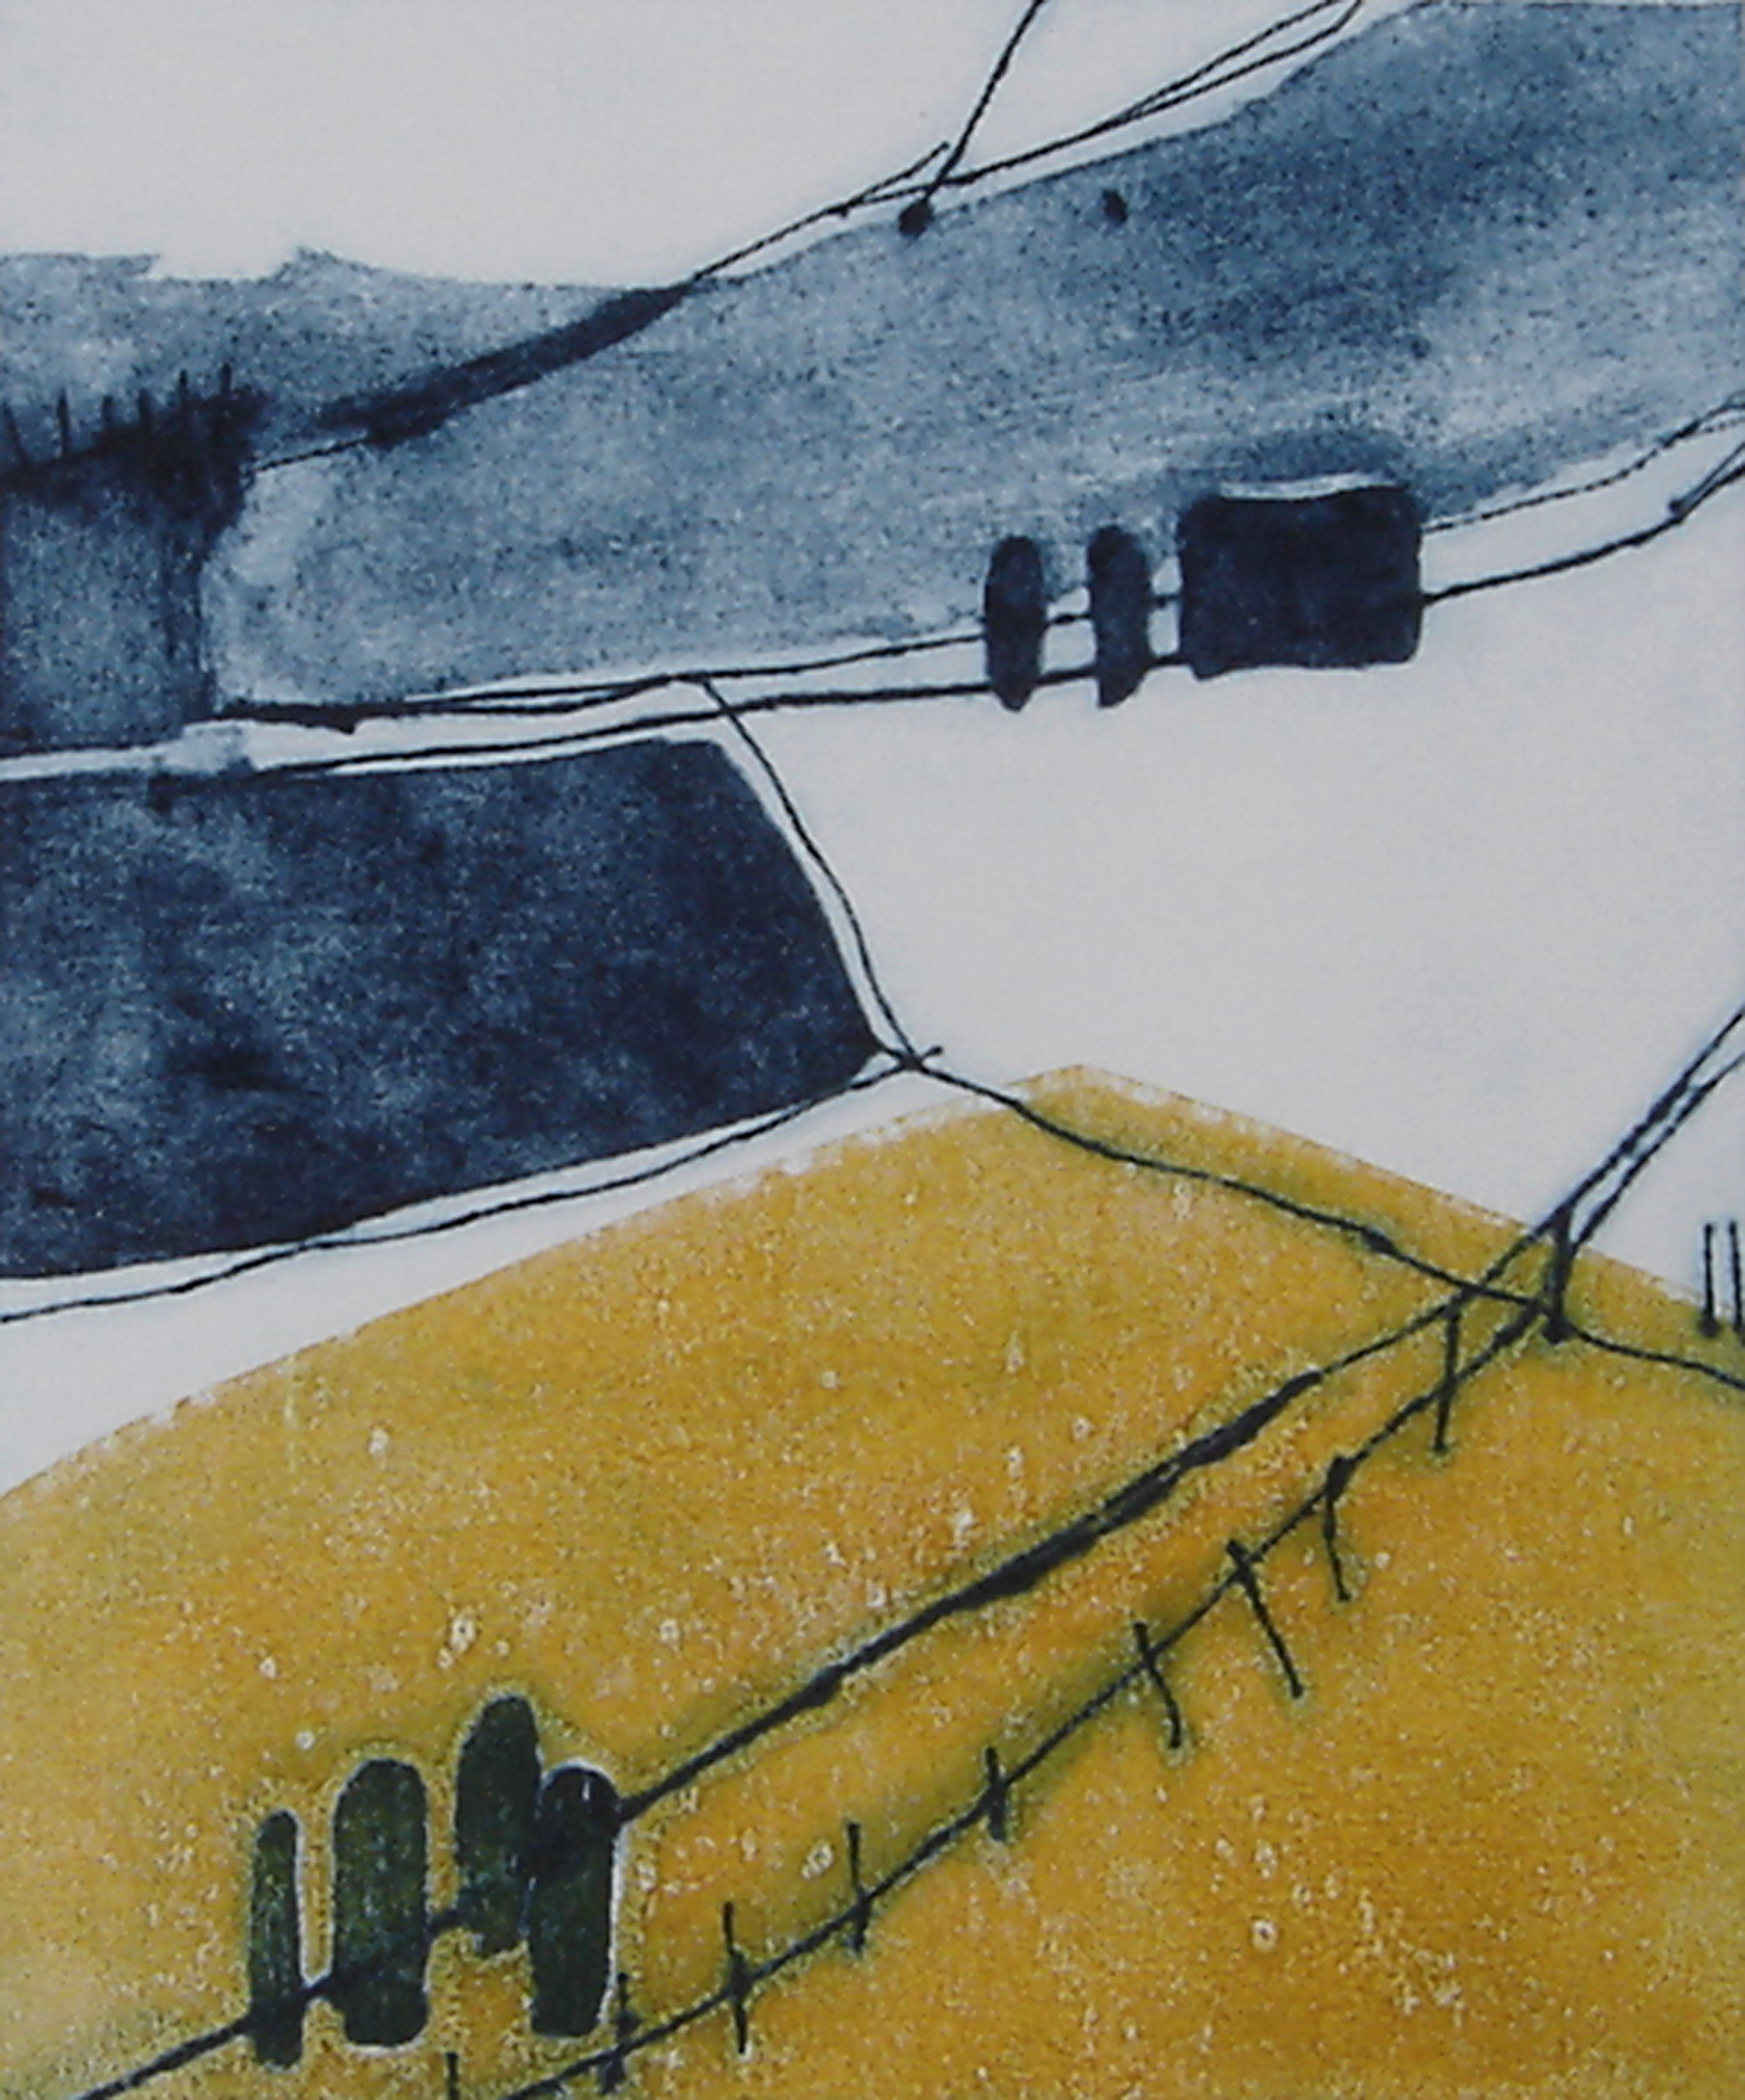 Sean's Fields Carborundum, drypoint and monotype, 28 x 24cm, edition of 3, 2012